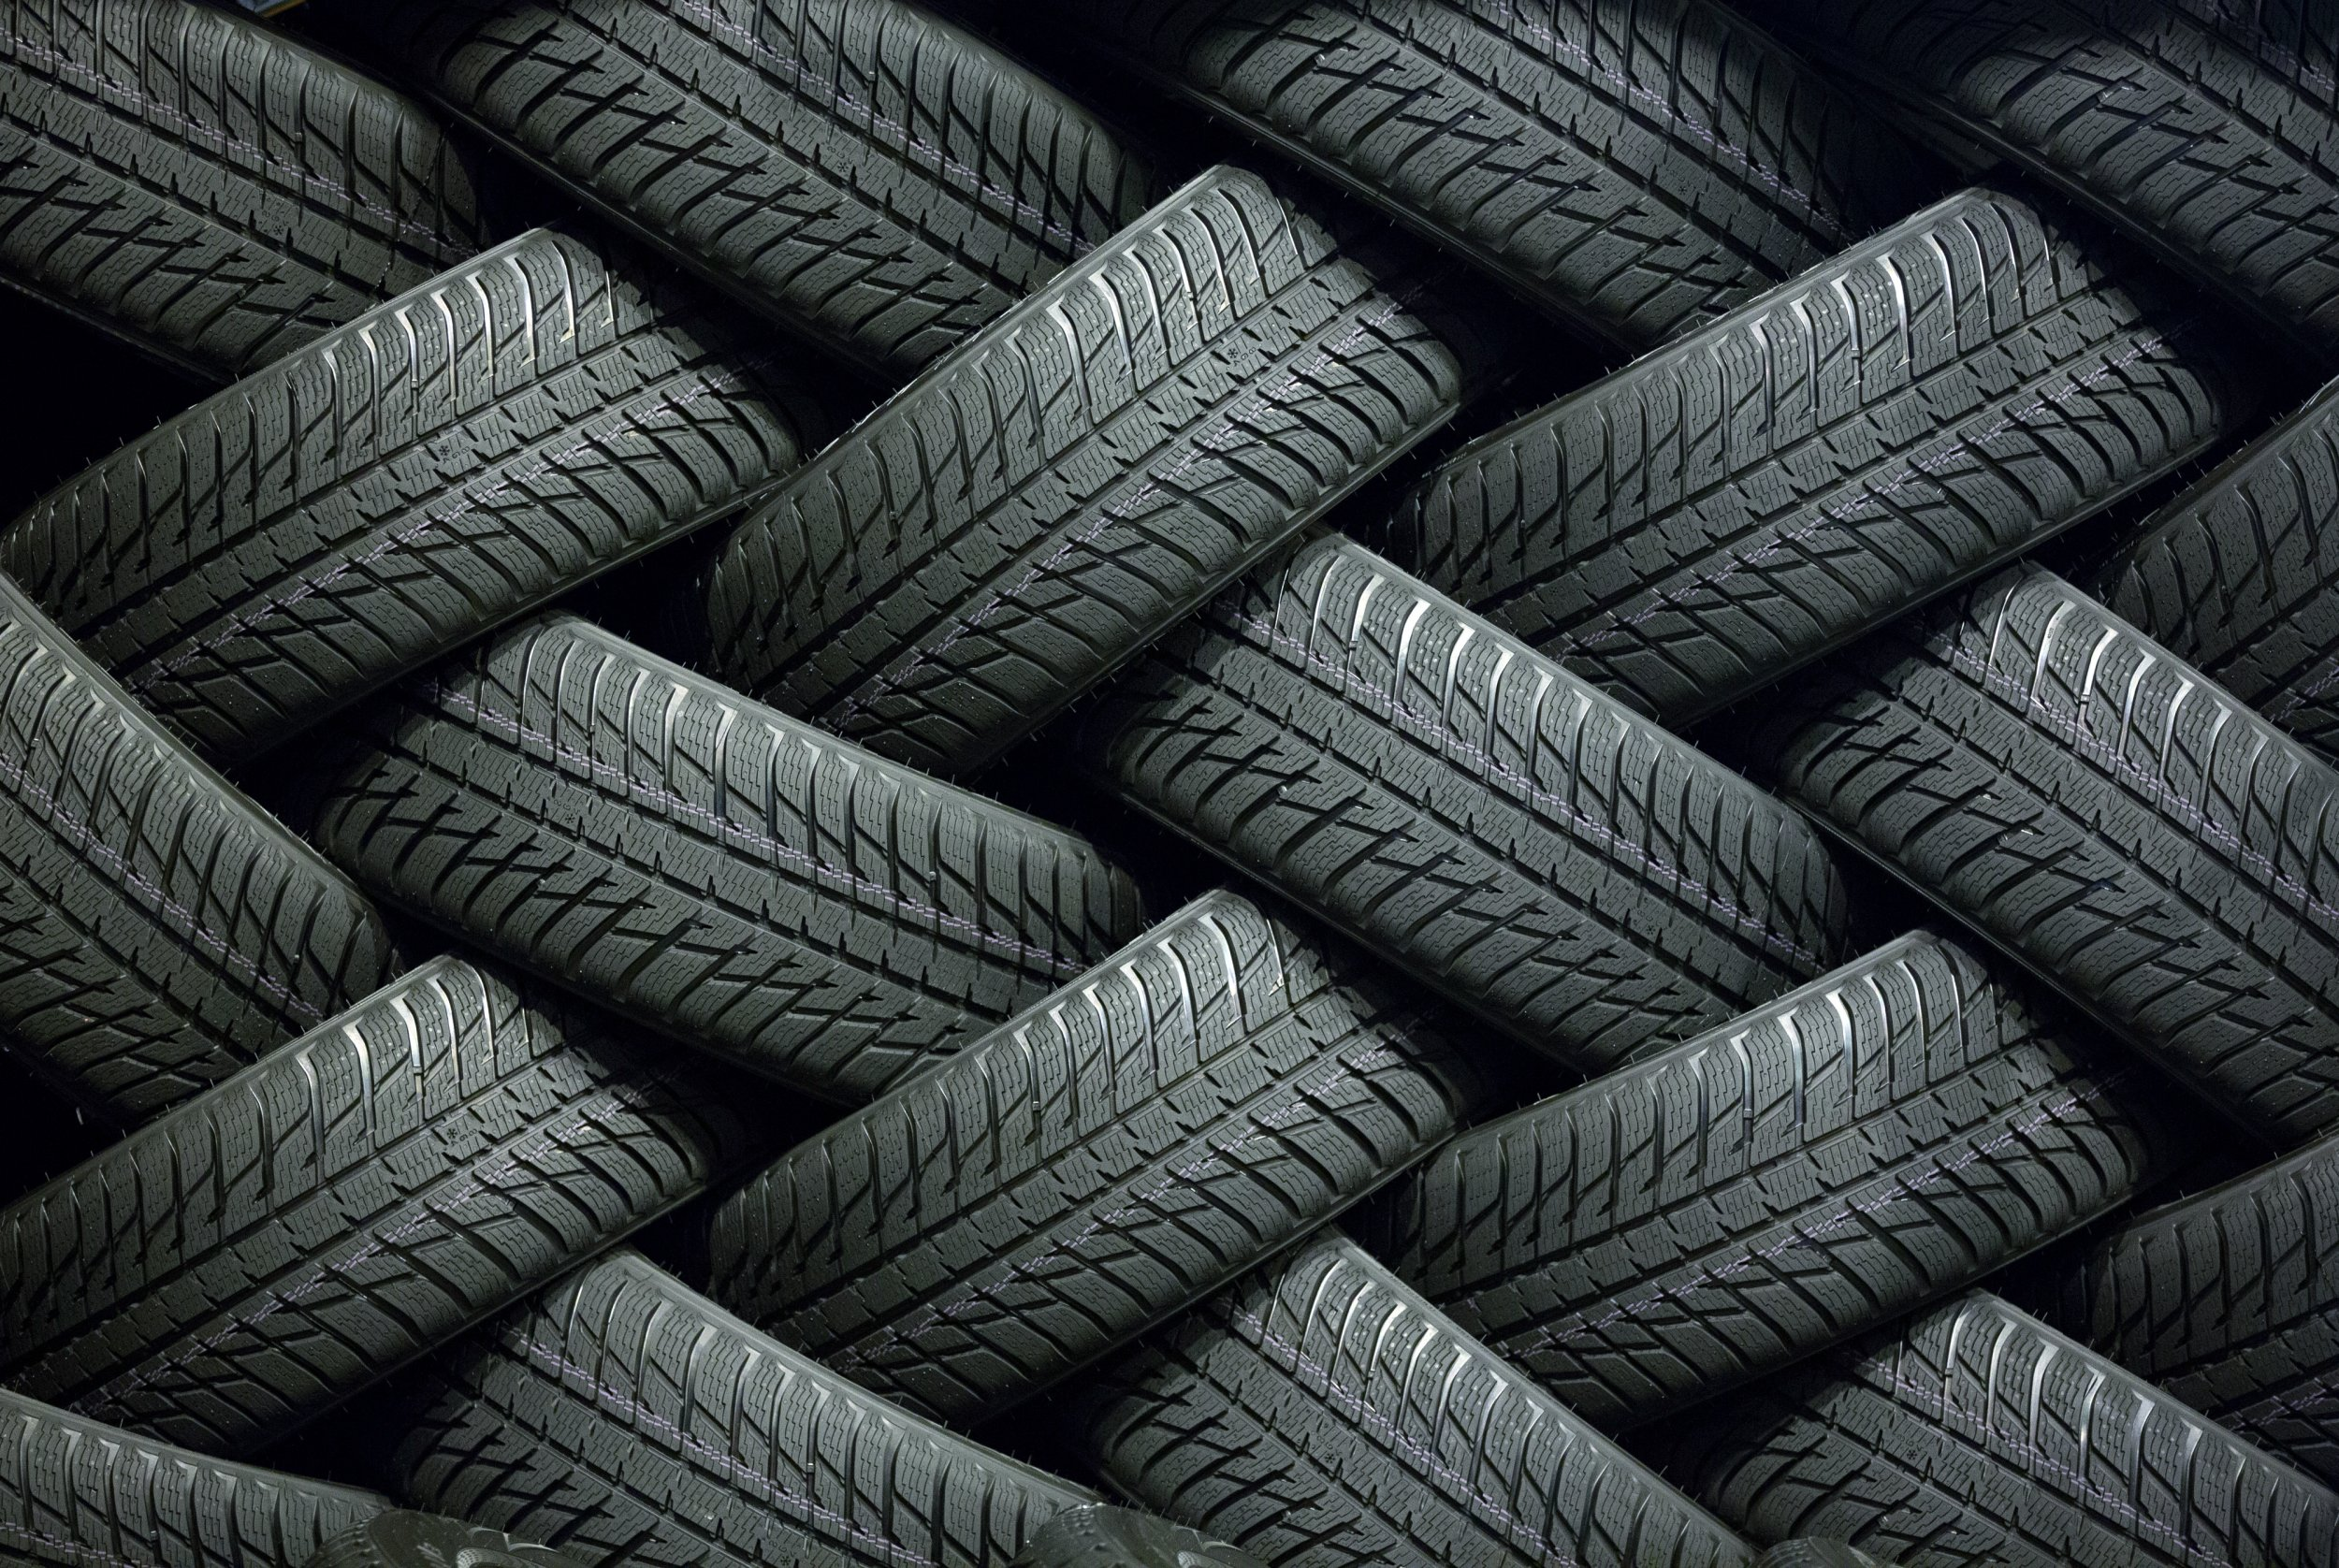 New Eco Friendly Renewable Tires Stretch The Boundaries